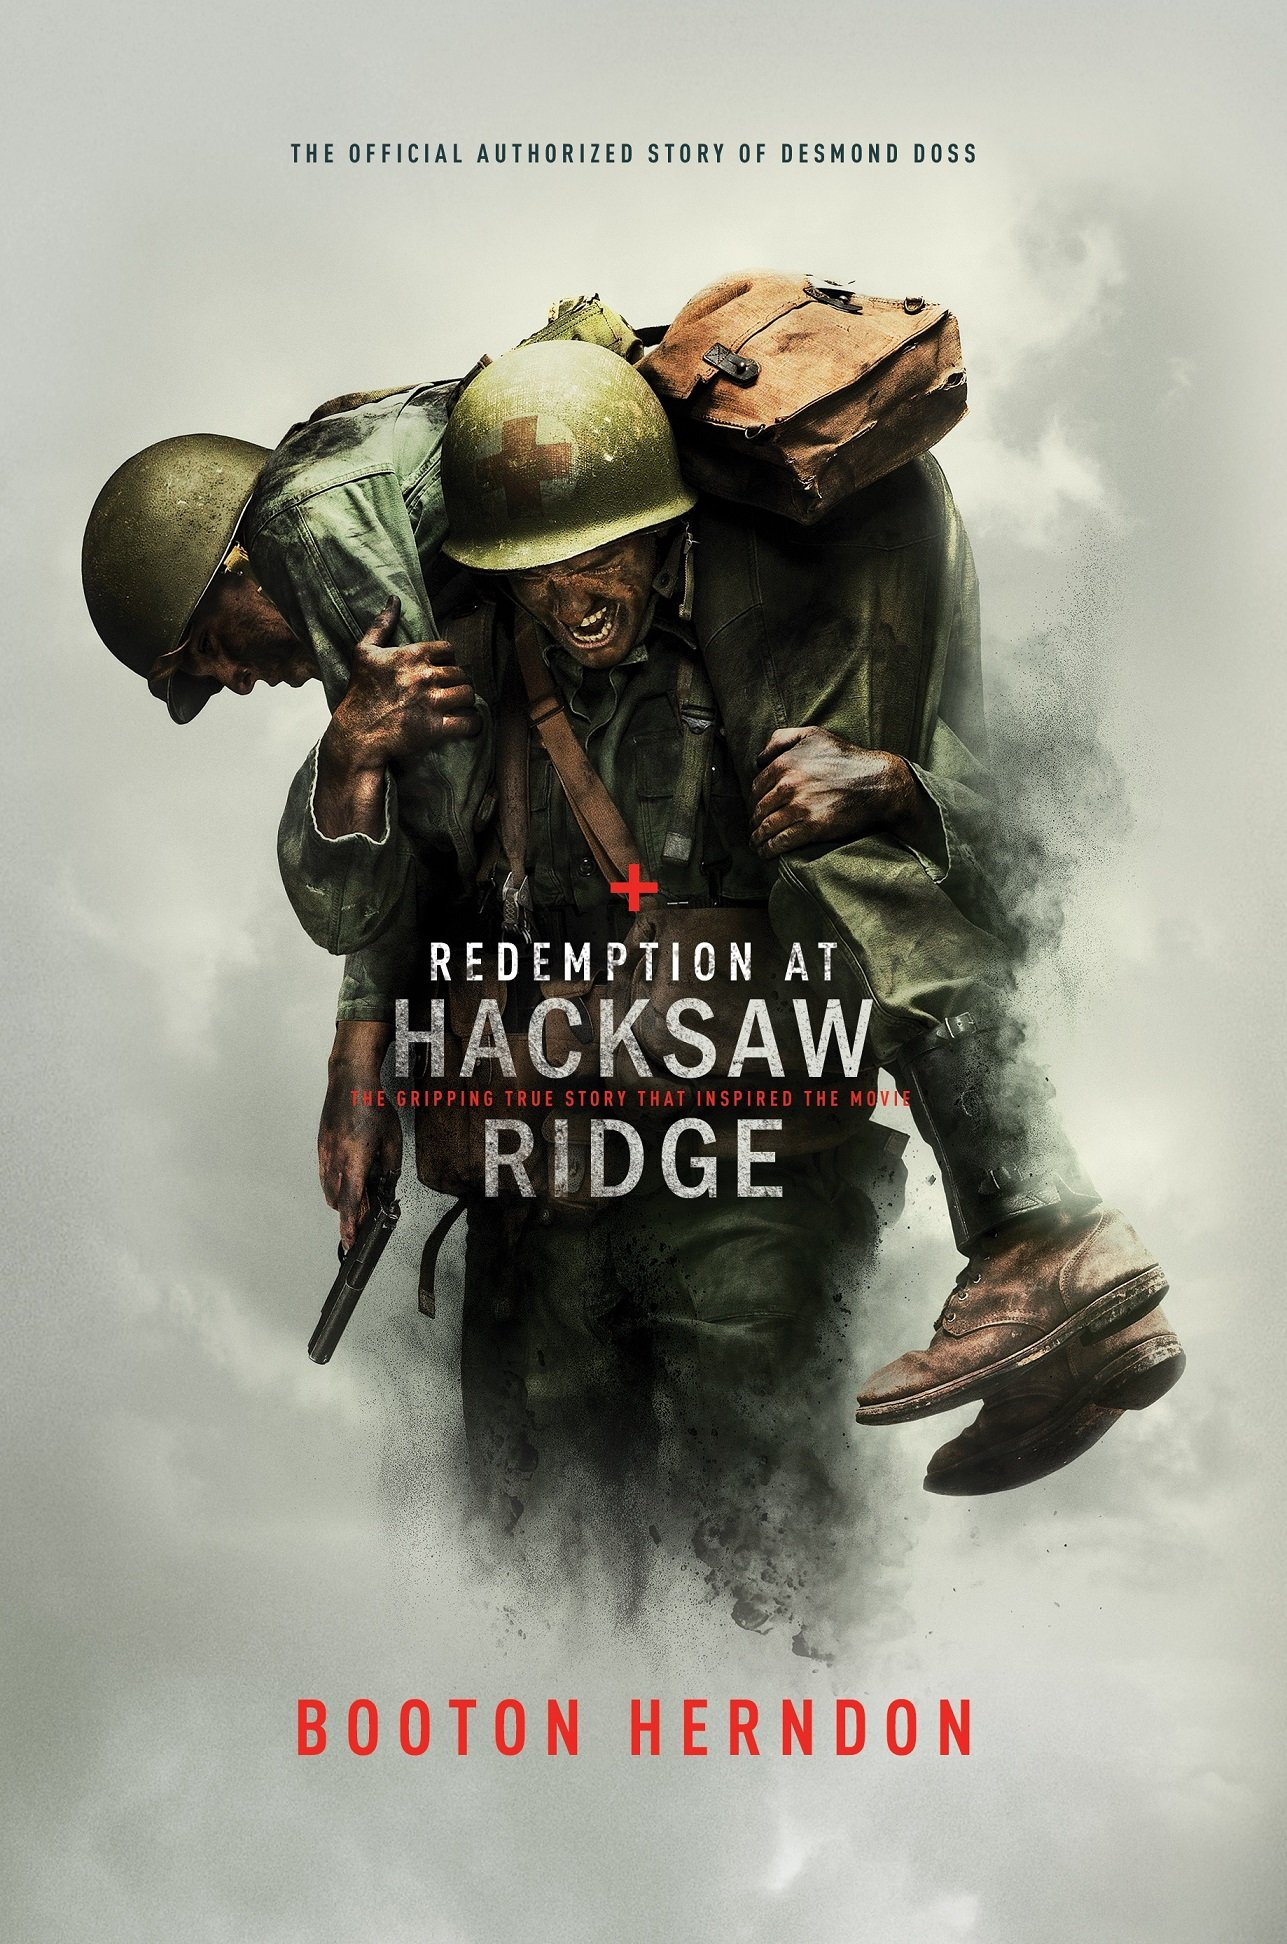 Amazon.com: Redemption At Hacksaw Ridge: The Gripping True Story That  Inspired The Movie (9781629131559): Booton Herndon: Books